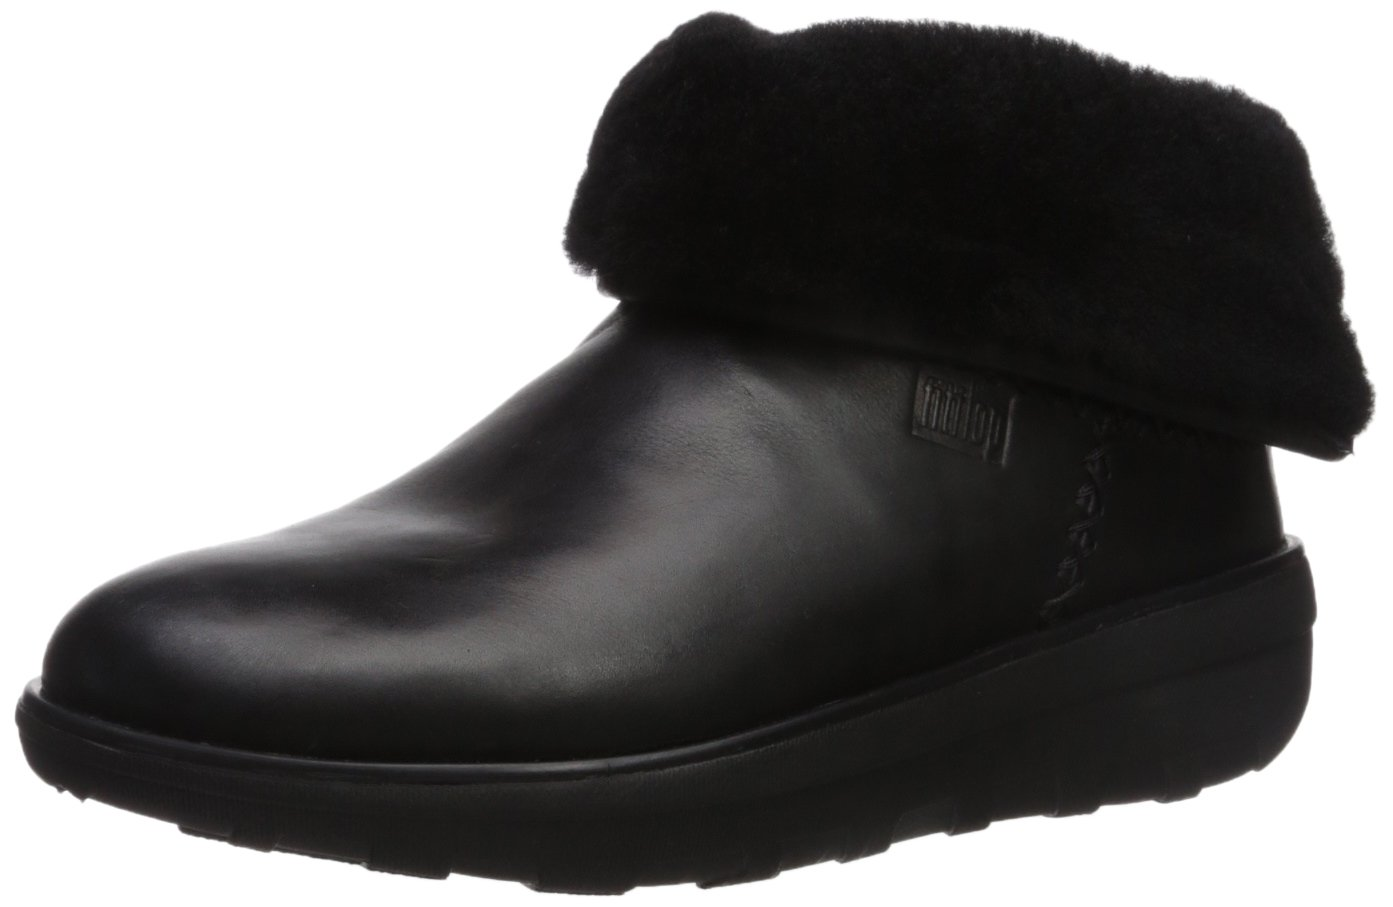 FitFlop Mukluk Unique Shorty 2 Boots, Bottines FitFlop Femme, Noir, Taille 19907 Unique Black (Leather Black) b61d600 - boatplans.space